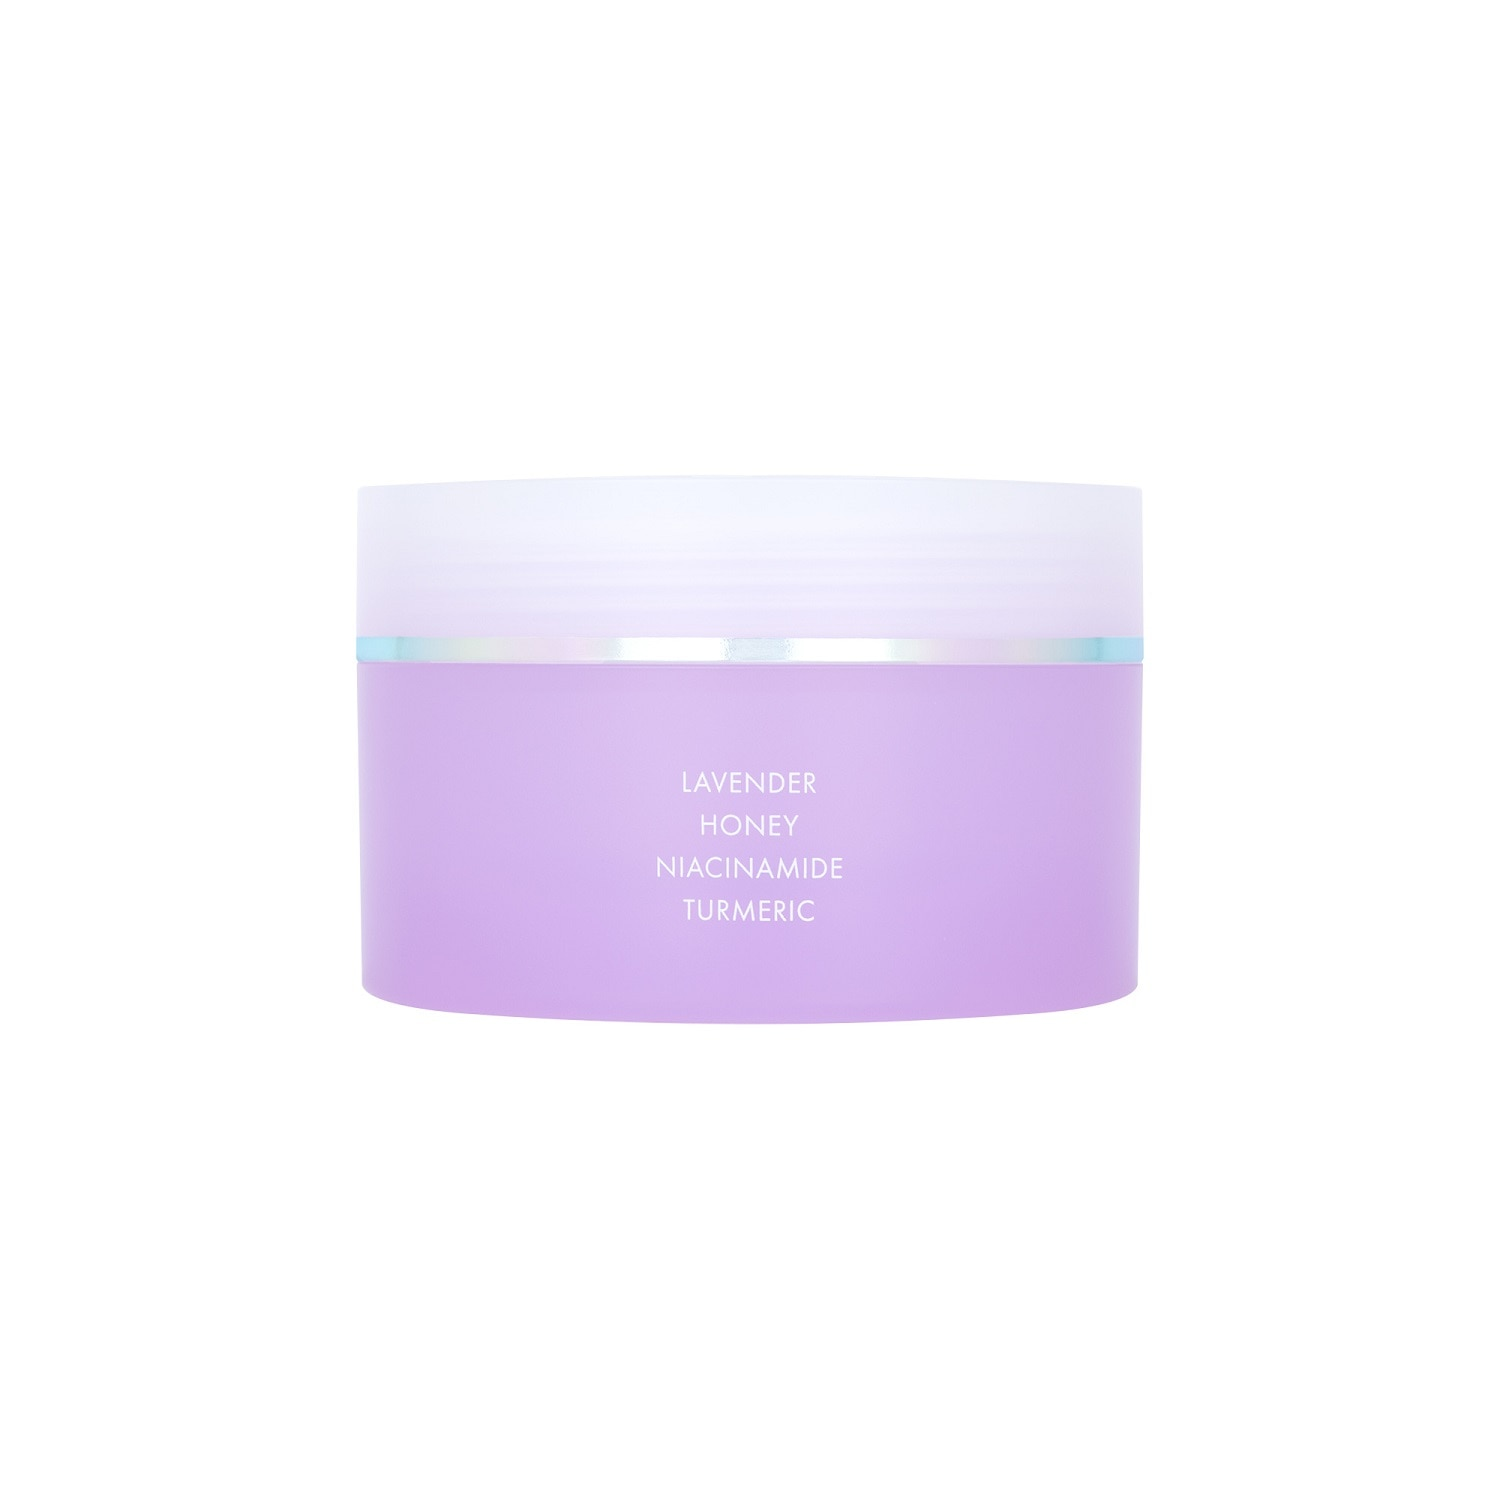 HONEY BALM JELLY MOISTURIZER 55ML (HIDRATANTE FACIAL)